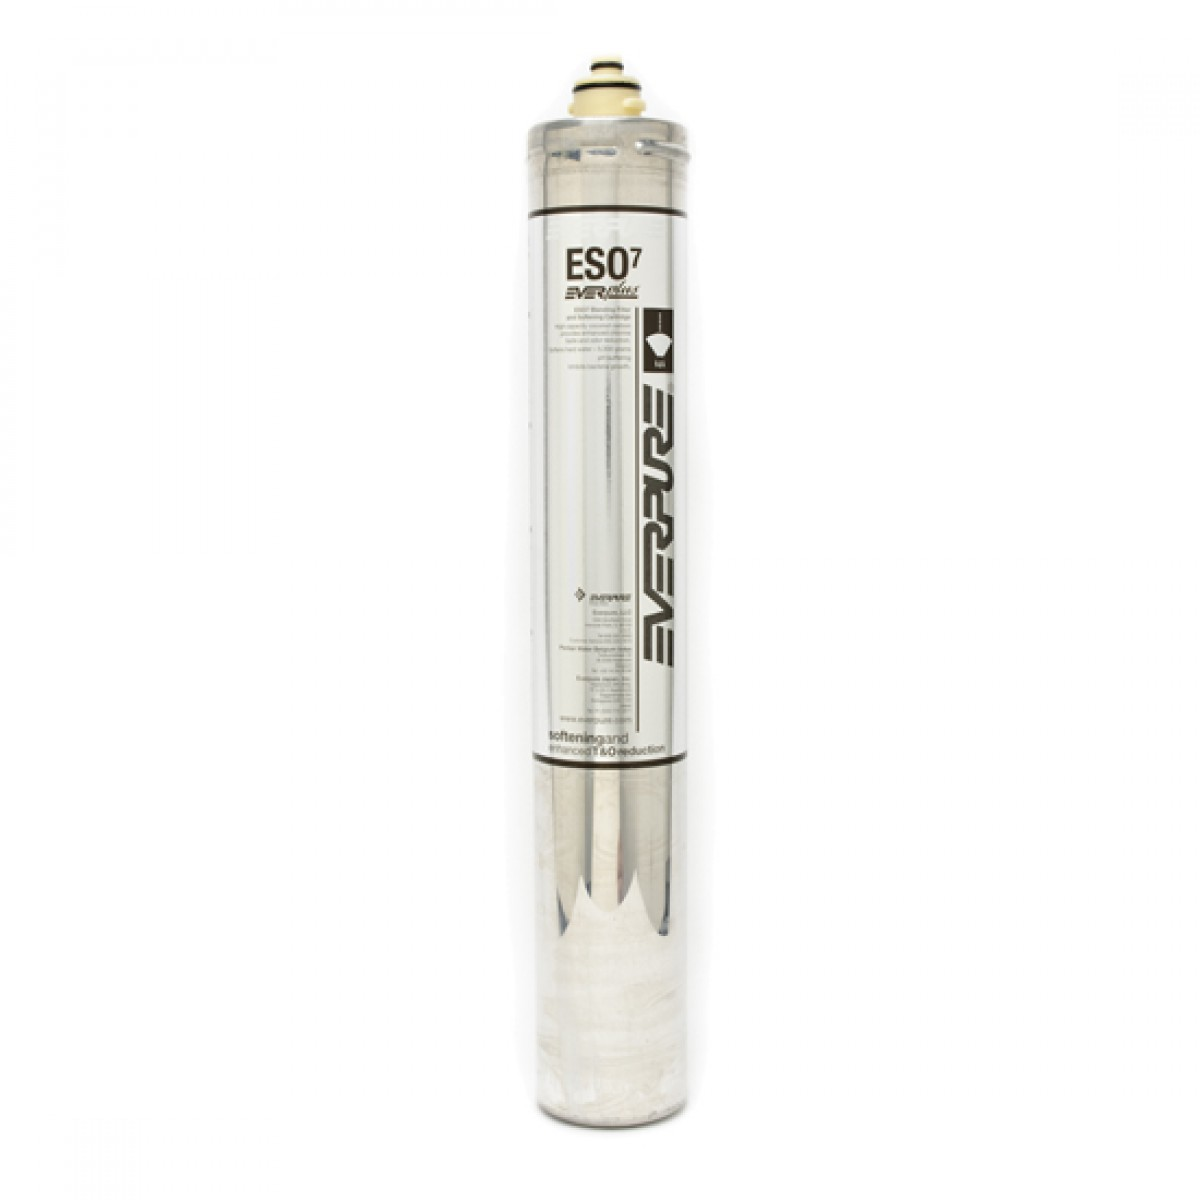 Everpure ev9607 25 eso 7 espresso water filter cartridge for Everpure water treatment system